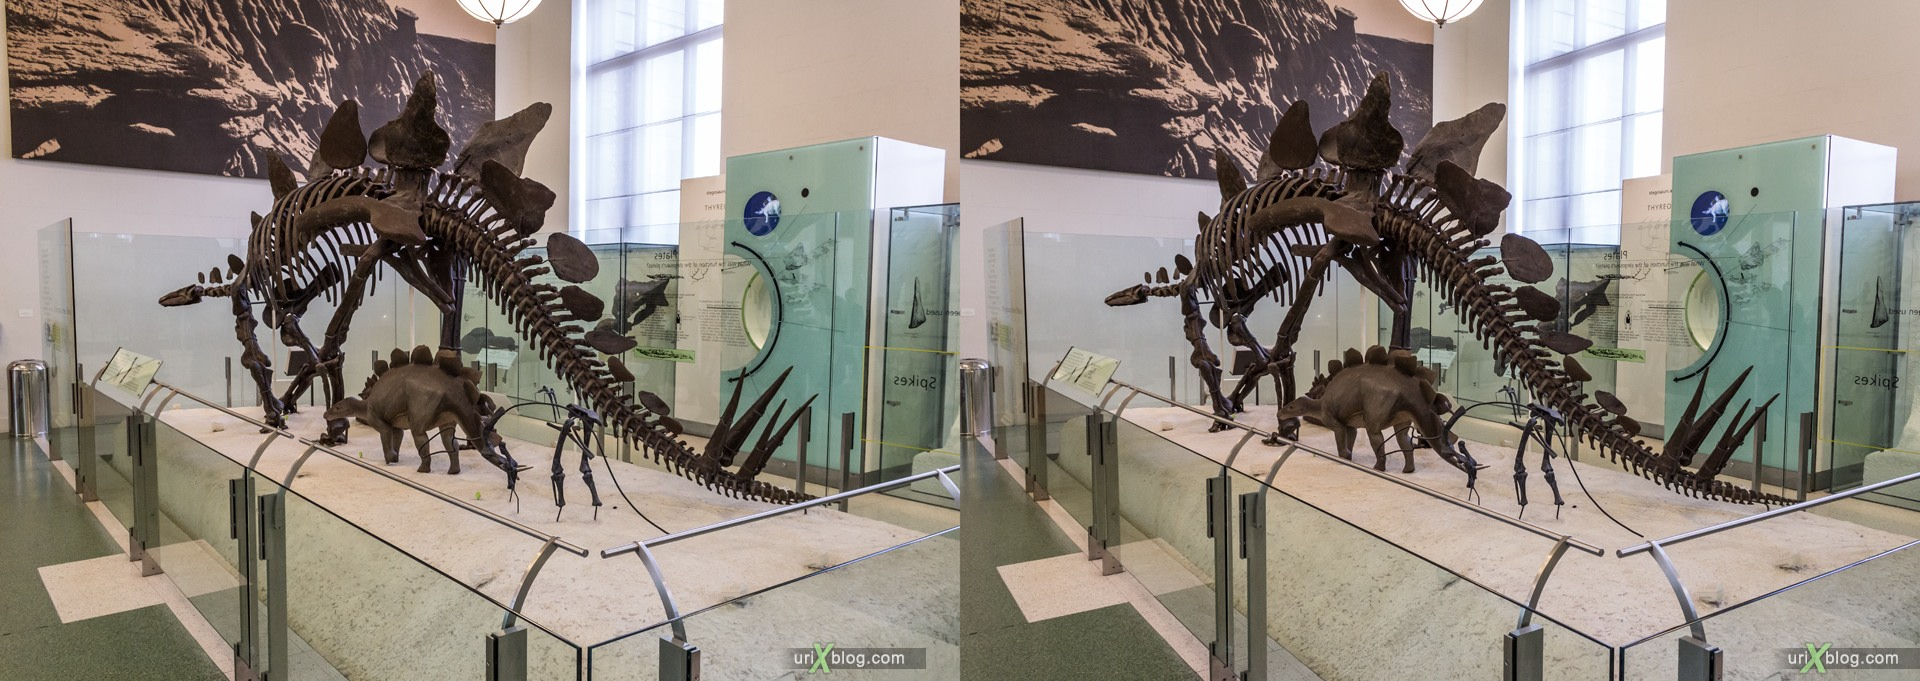 2013, American Museum of Natural History, NYC, New York City, USA, animal, dinosaur, skeleton, 3D, stereo pair, cross-eyed, crossview, cross view stereo pair, stereoscopic